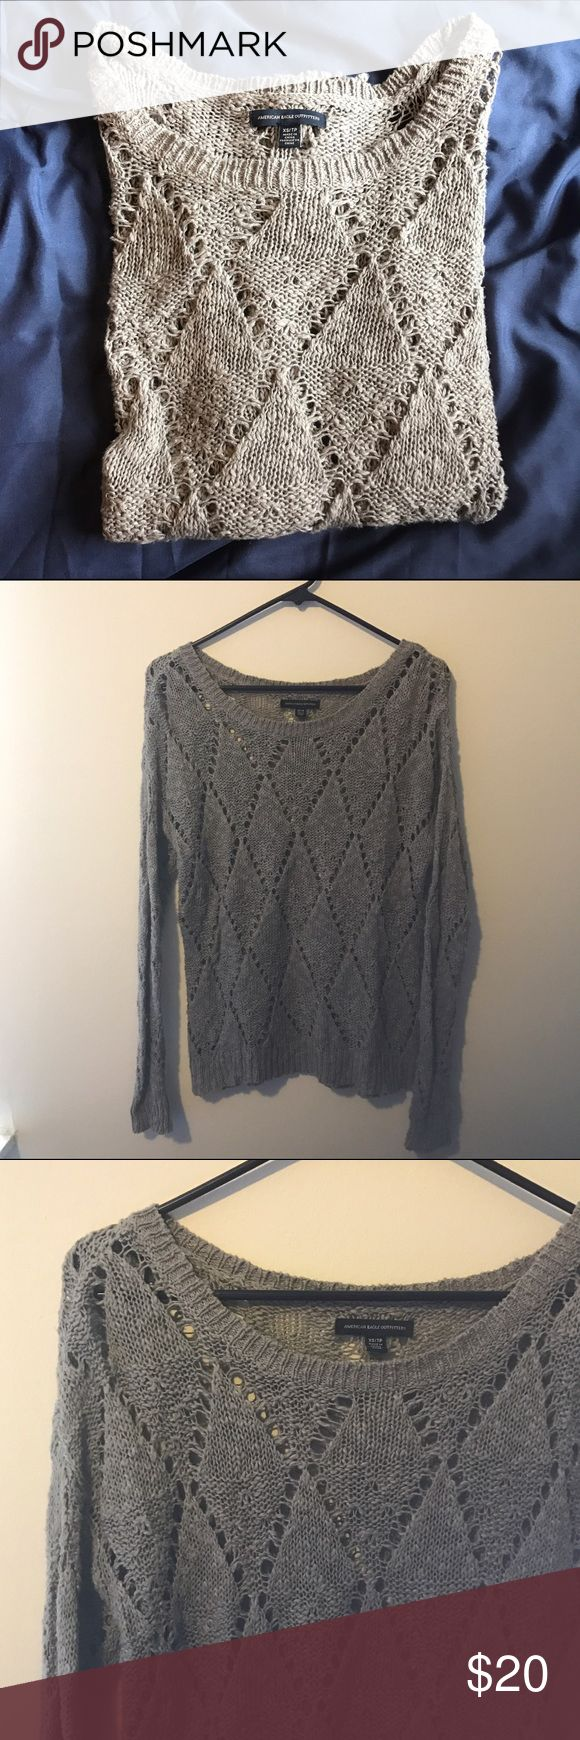 American Eagle Gray Knit Sweater Gorgeous gray knitted sweater. Good condition! American Eagle Outfitters Sweaters Crew & Scoop Necks